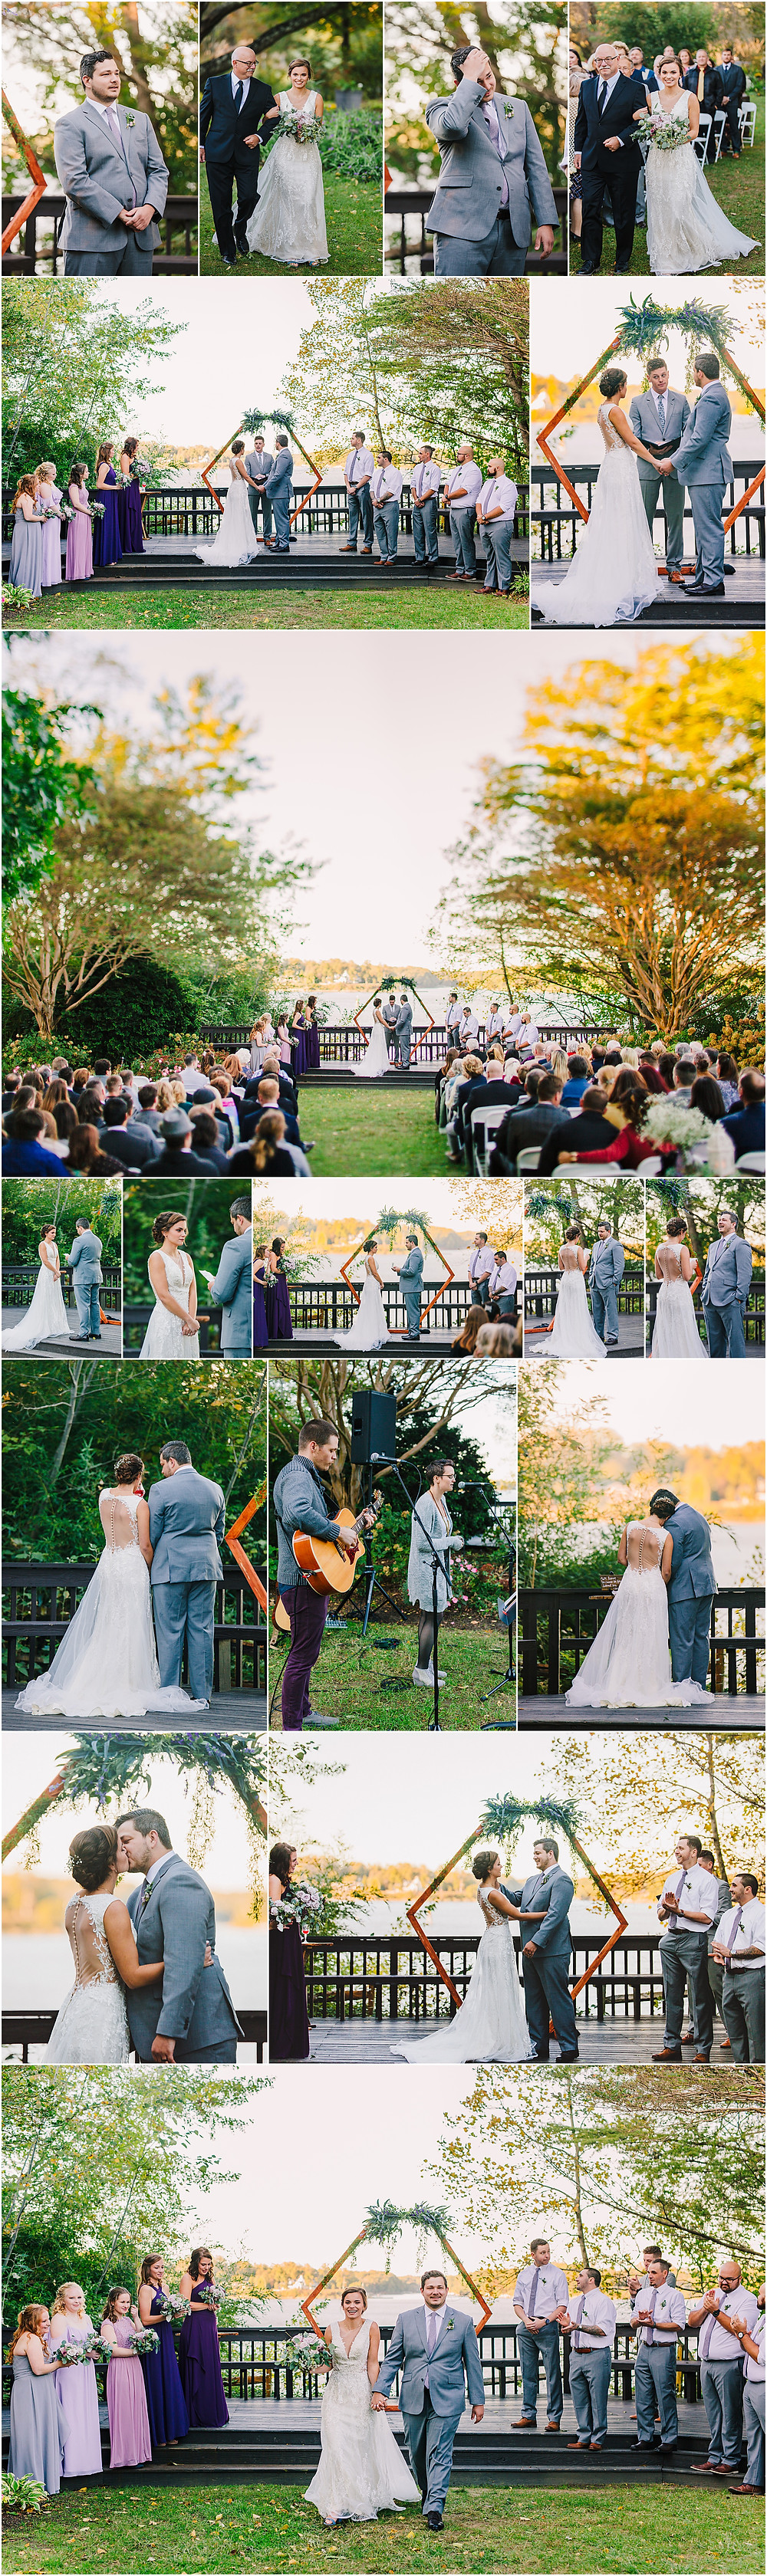 Sunset Wedding Ceremony at London Town and Gardens Annapolis Wedding Photography